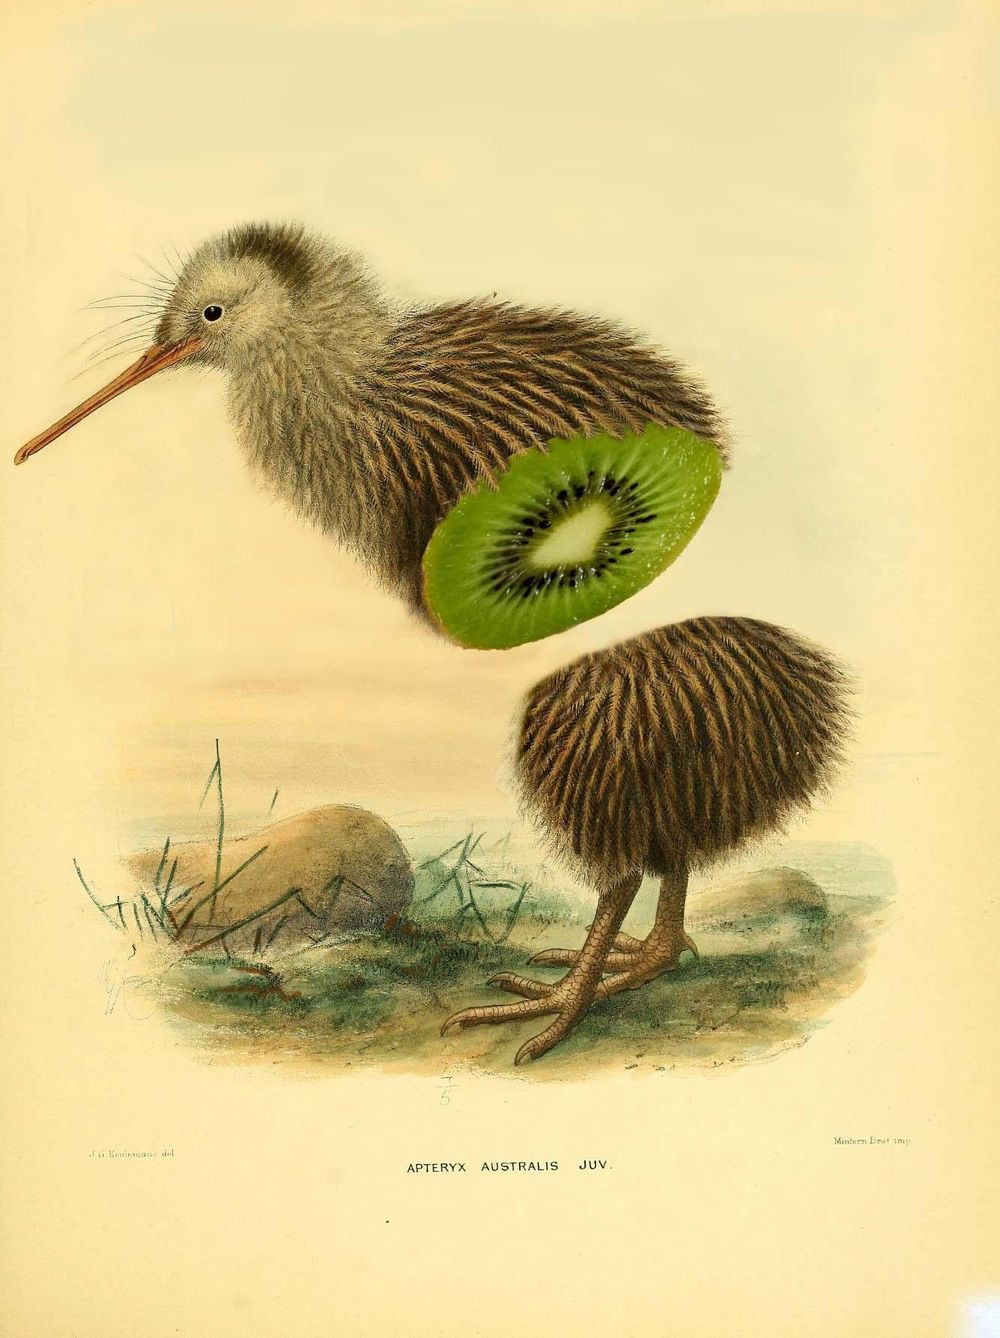 I cut a kiwi, but it was only kiwi inside... - image 1 - student project